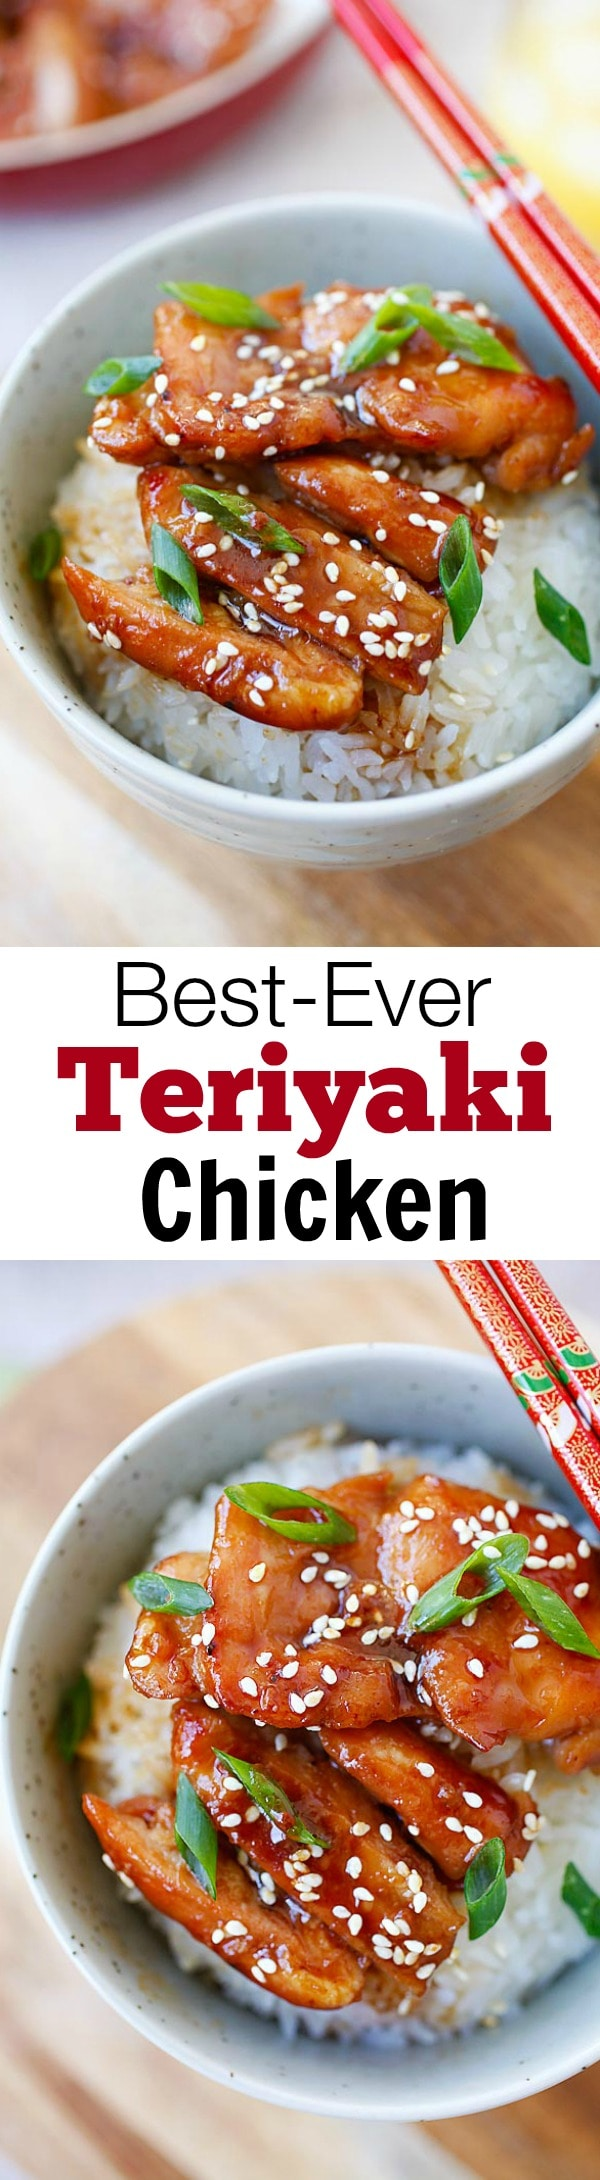 Easy Teriyaki Chicken  - the most popular Japanese chicken dish. Learn how to make the best-ever chicken teriyaki with only four ingredients, plus step-by-step cooking video | rasamalaysia.com